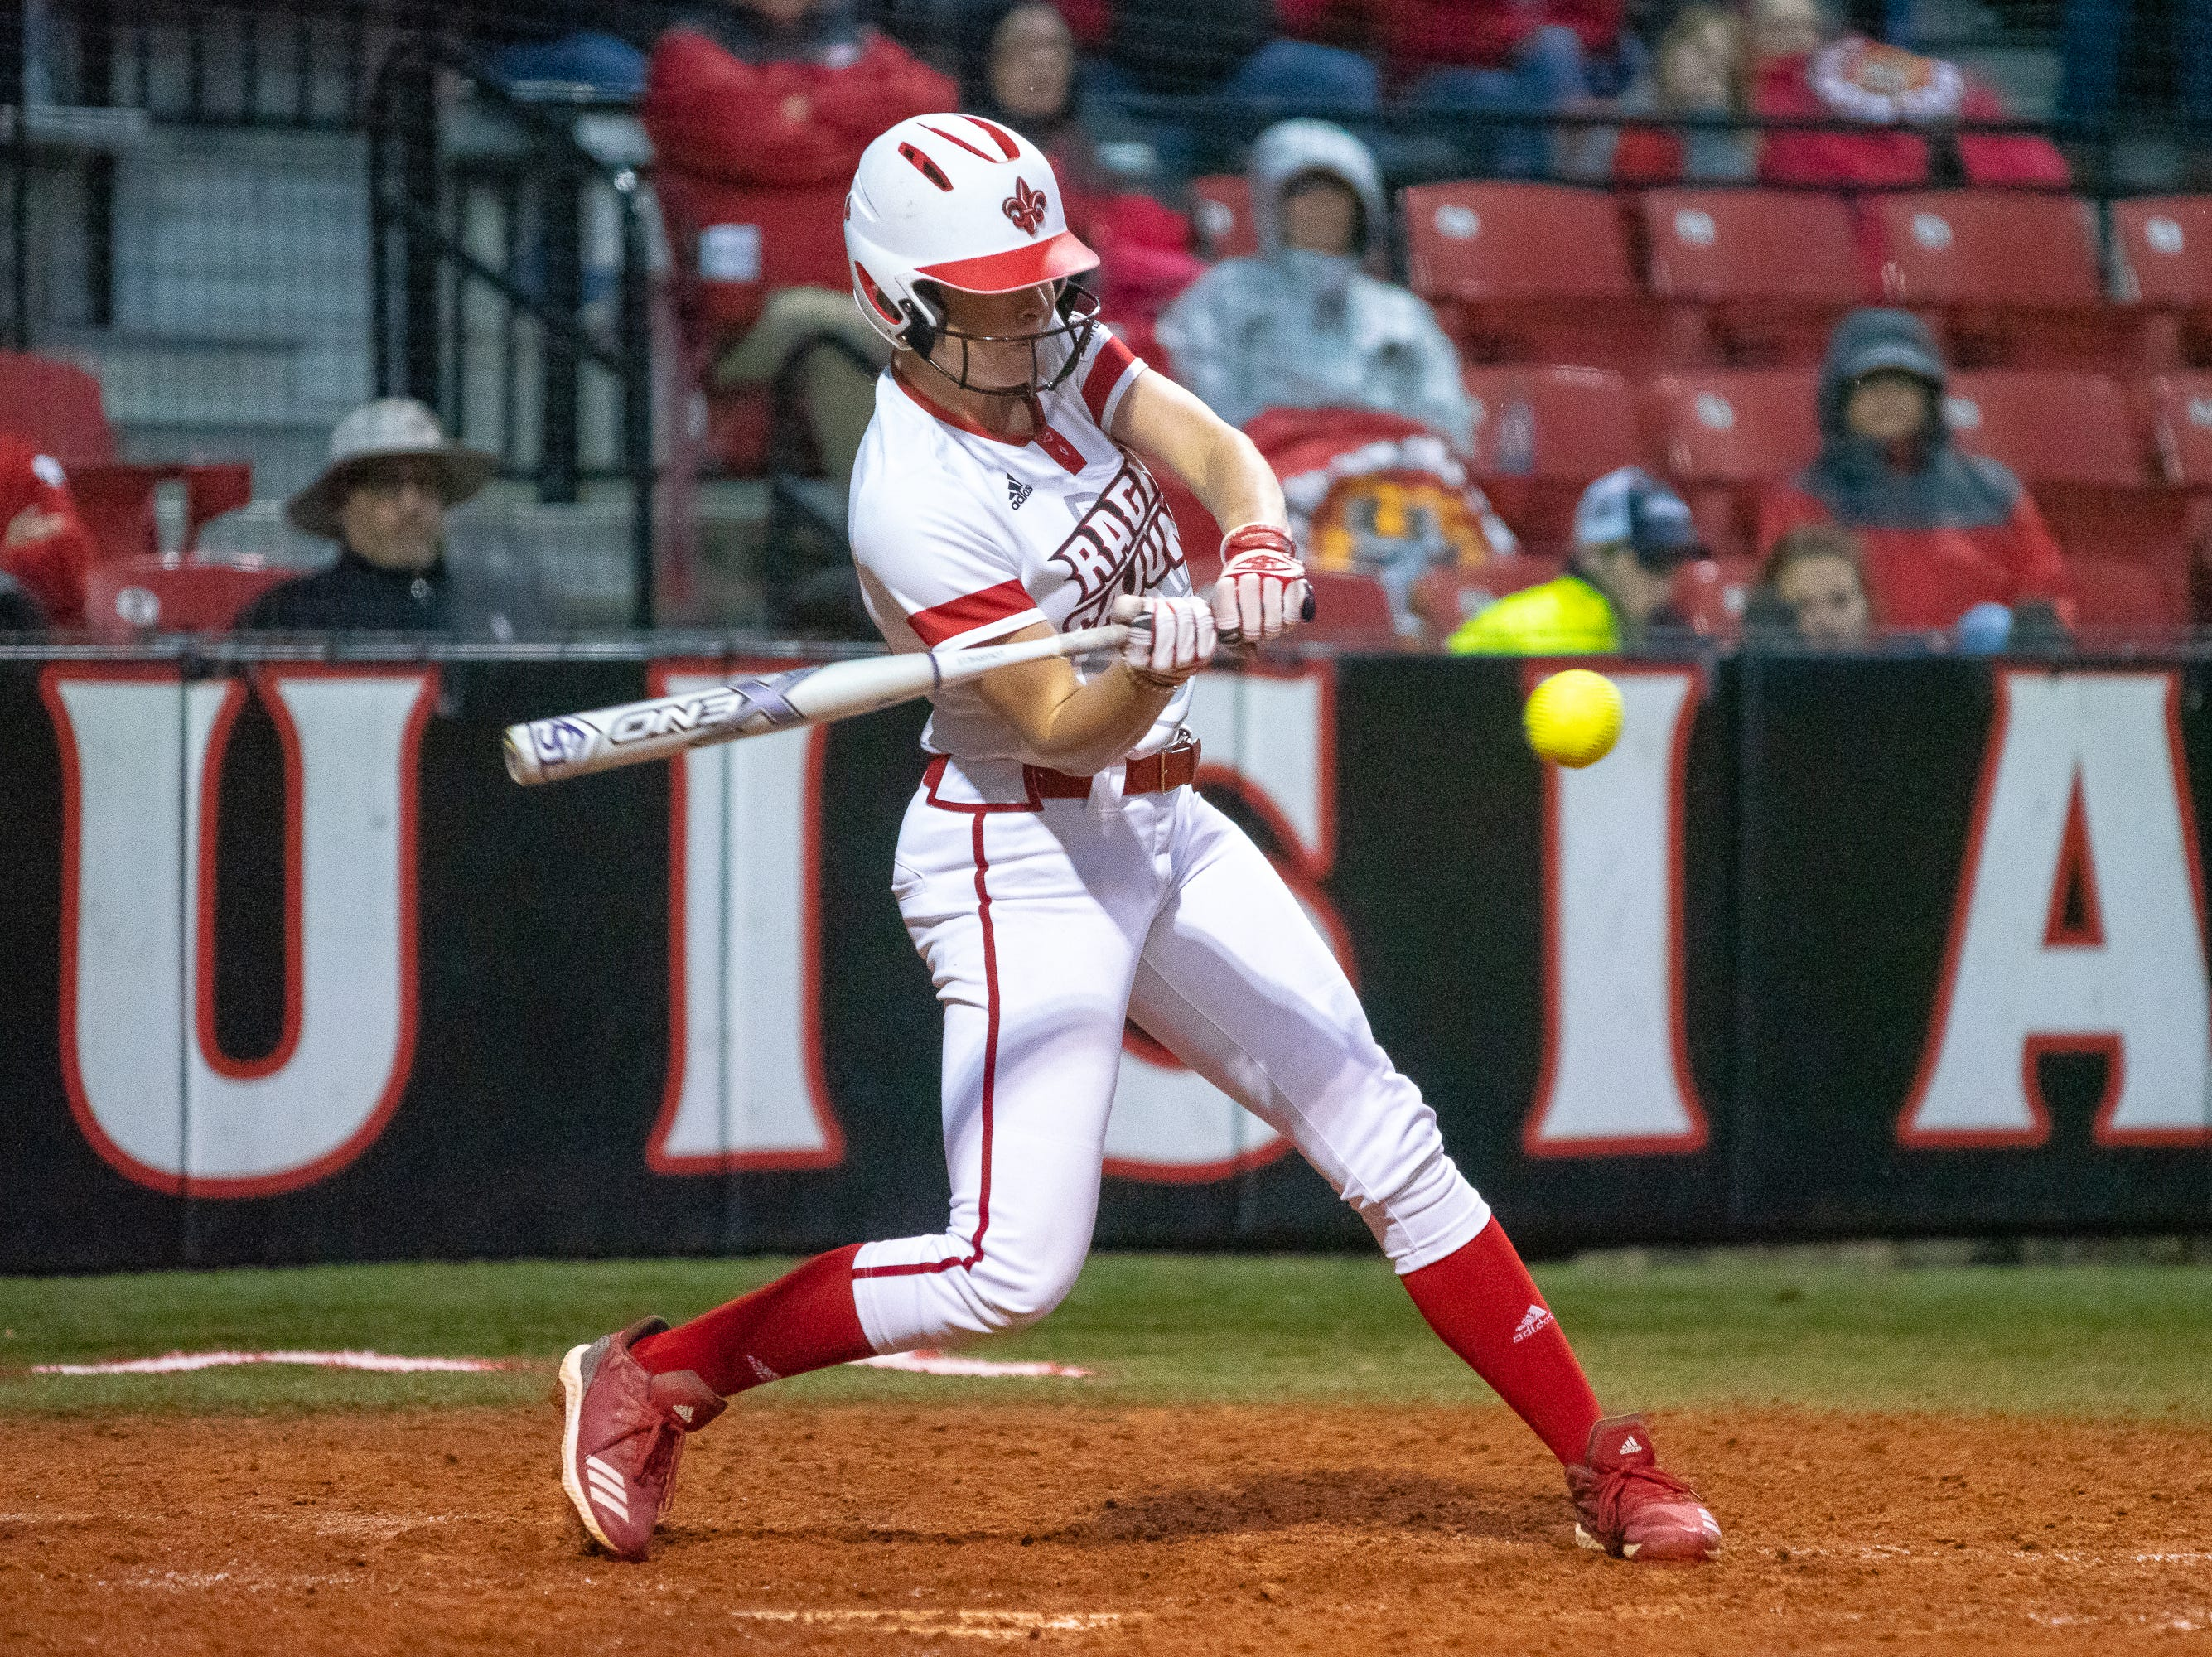 UL's Casidy Chaumont takes a swing at the ball as the Ragin' Cajuns take on the Troy Trojans at Lamson Park, Yvette Girouard Field on Friday, March 15, 2019.